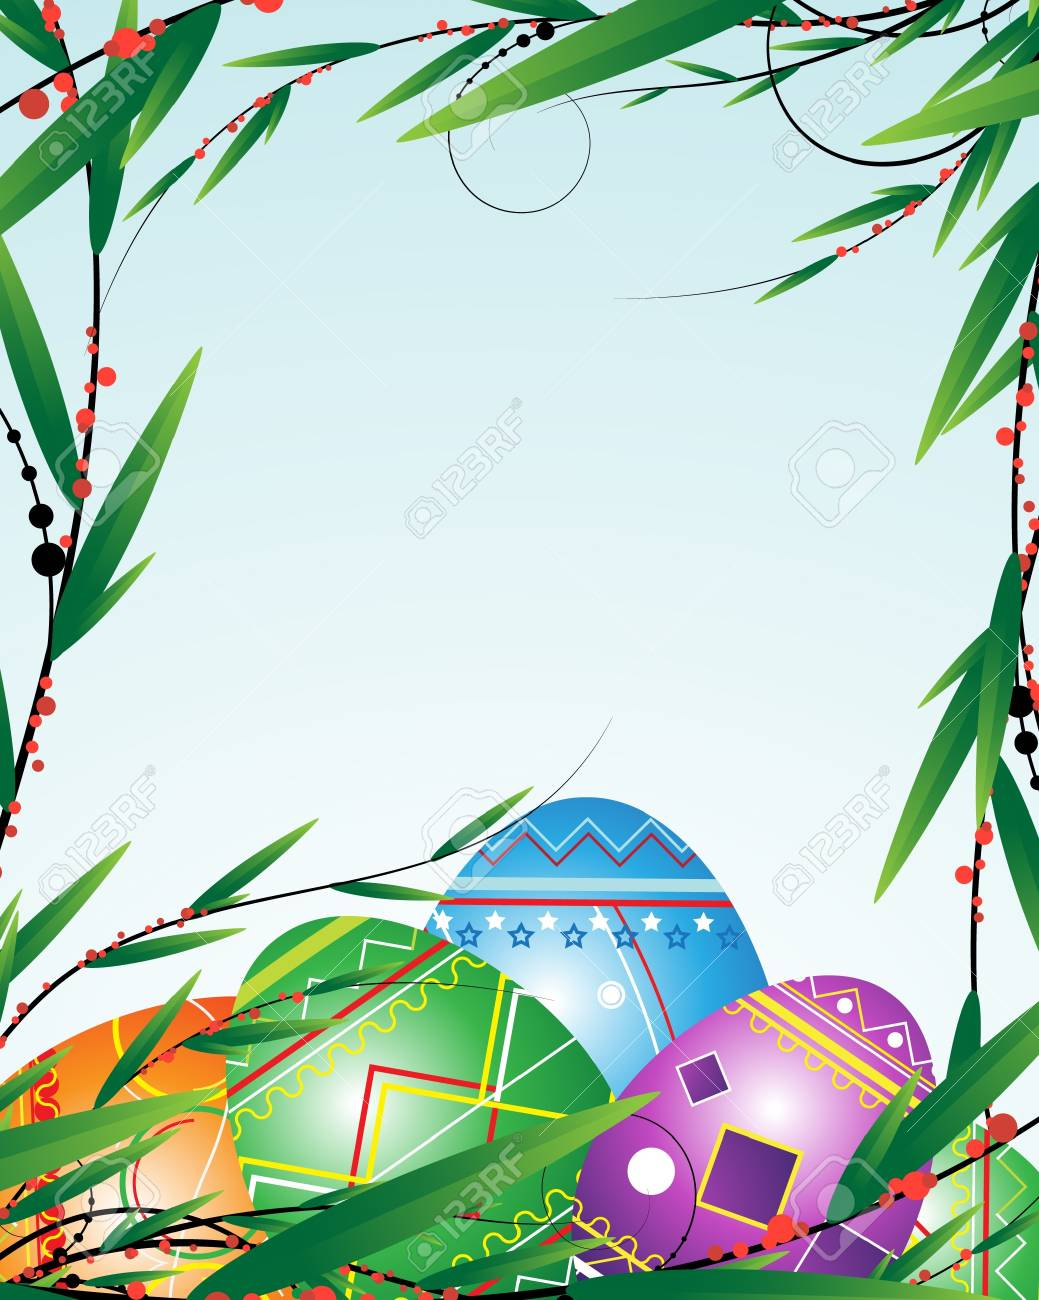 Easter eggs in a frame of spring branches Stock Vector - 9295383